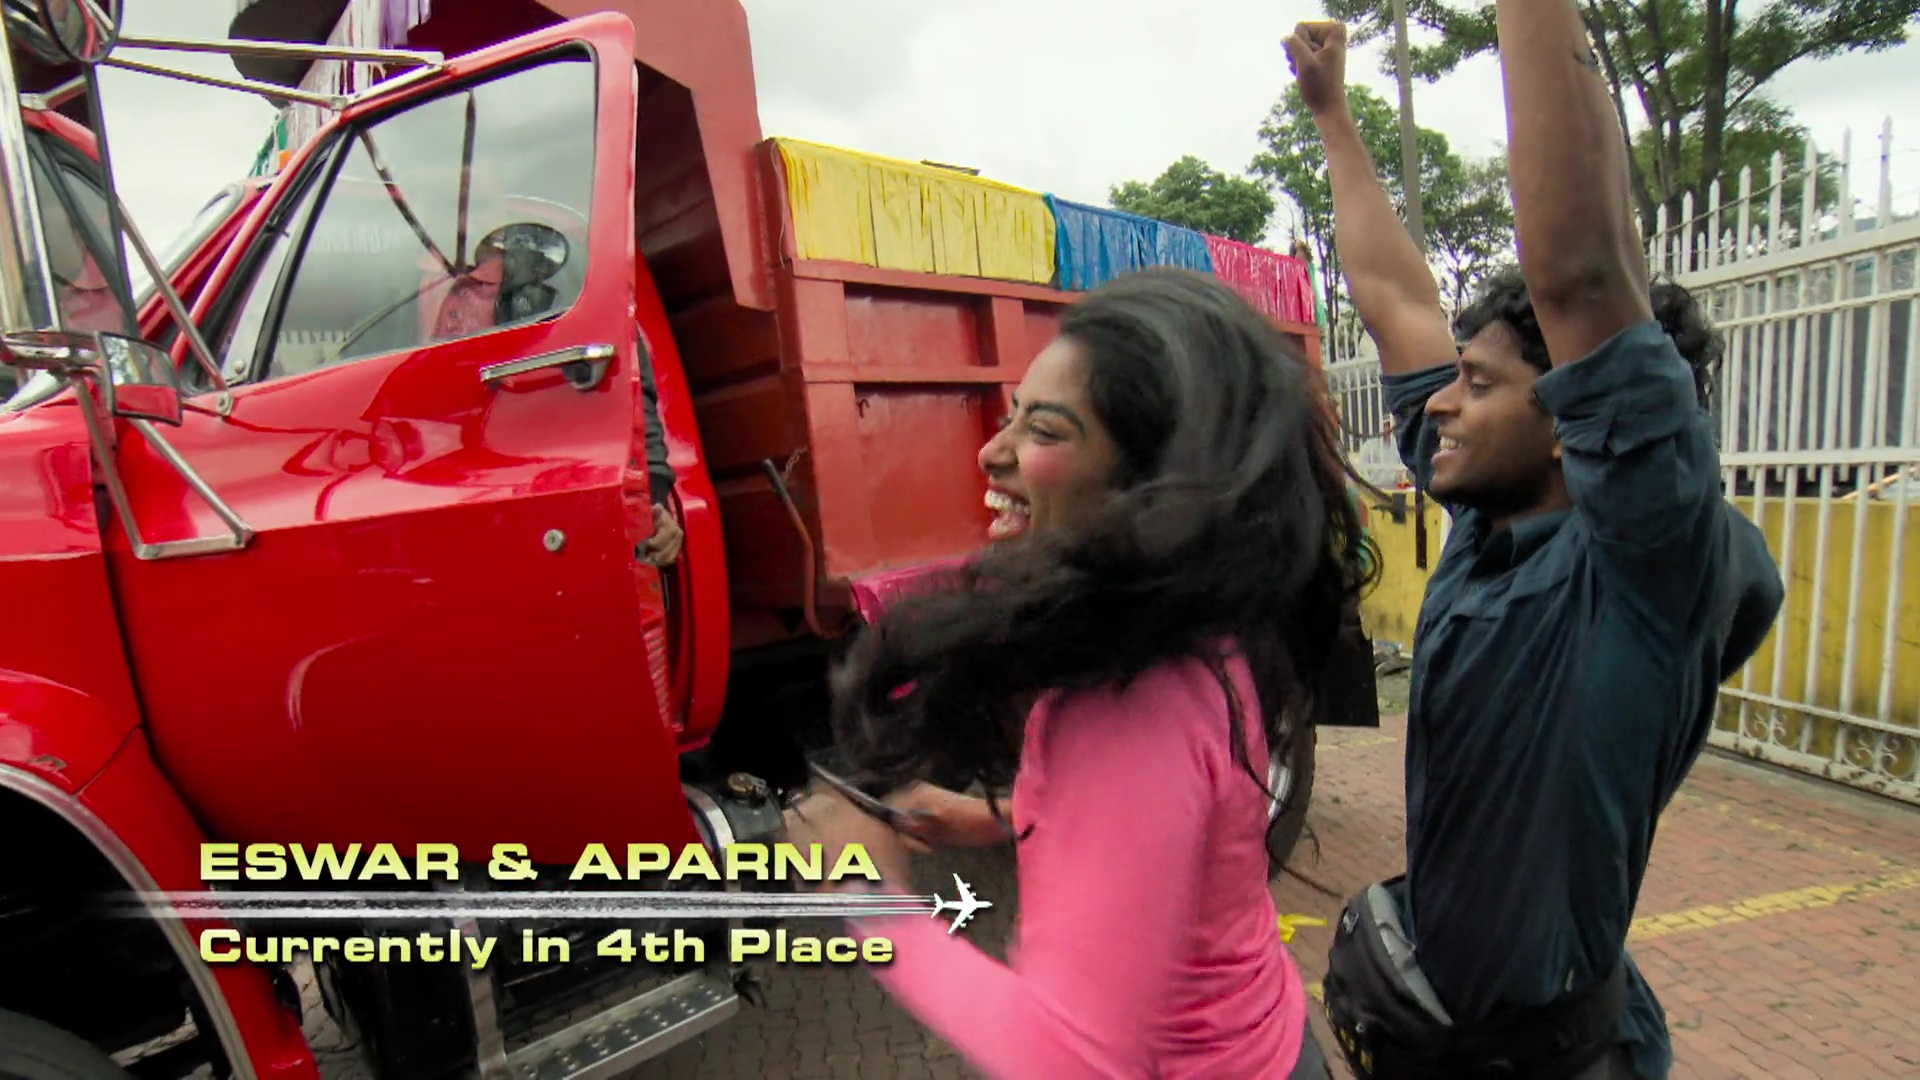 The Amazing Race 32 Episode 2 Recap